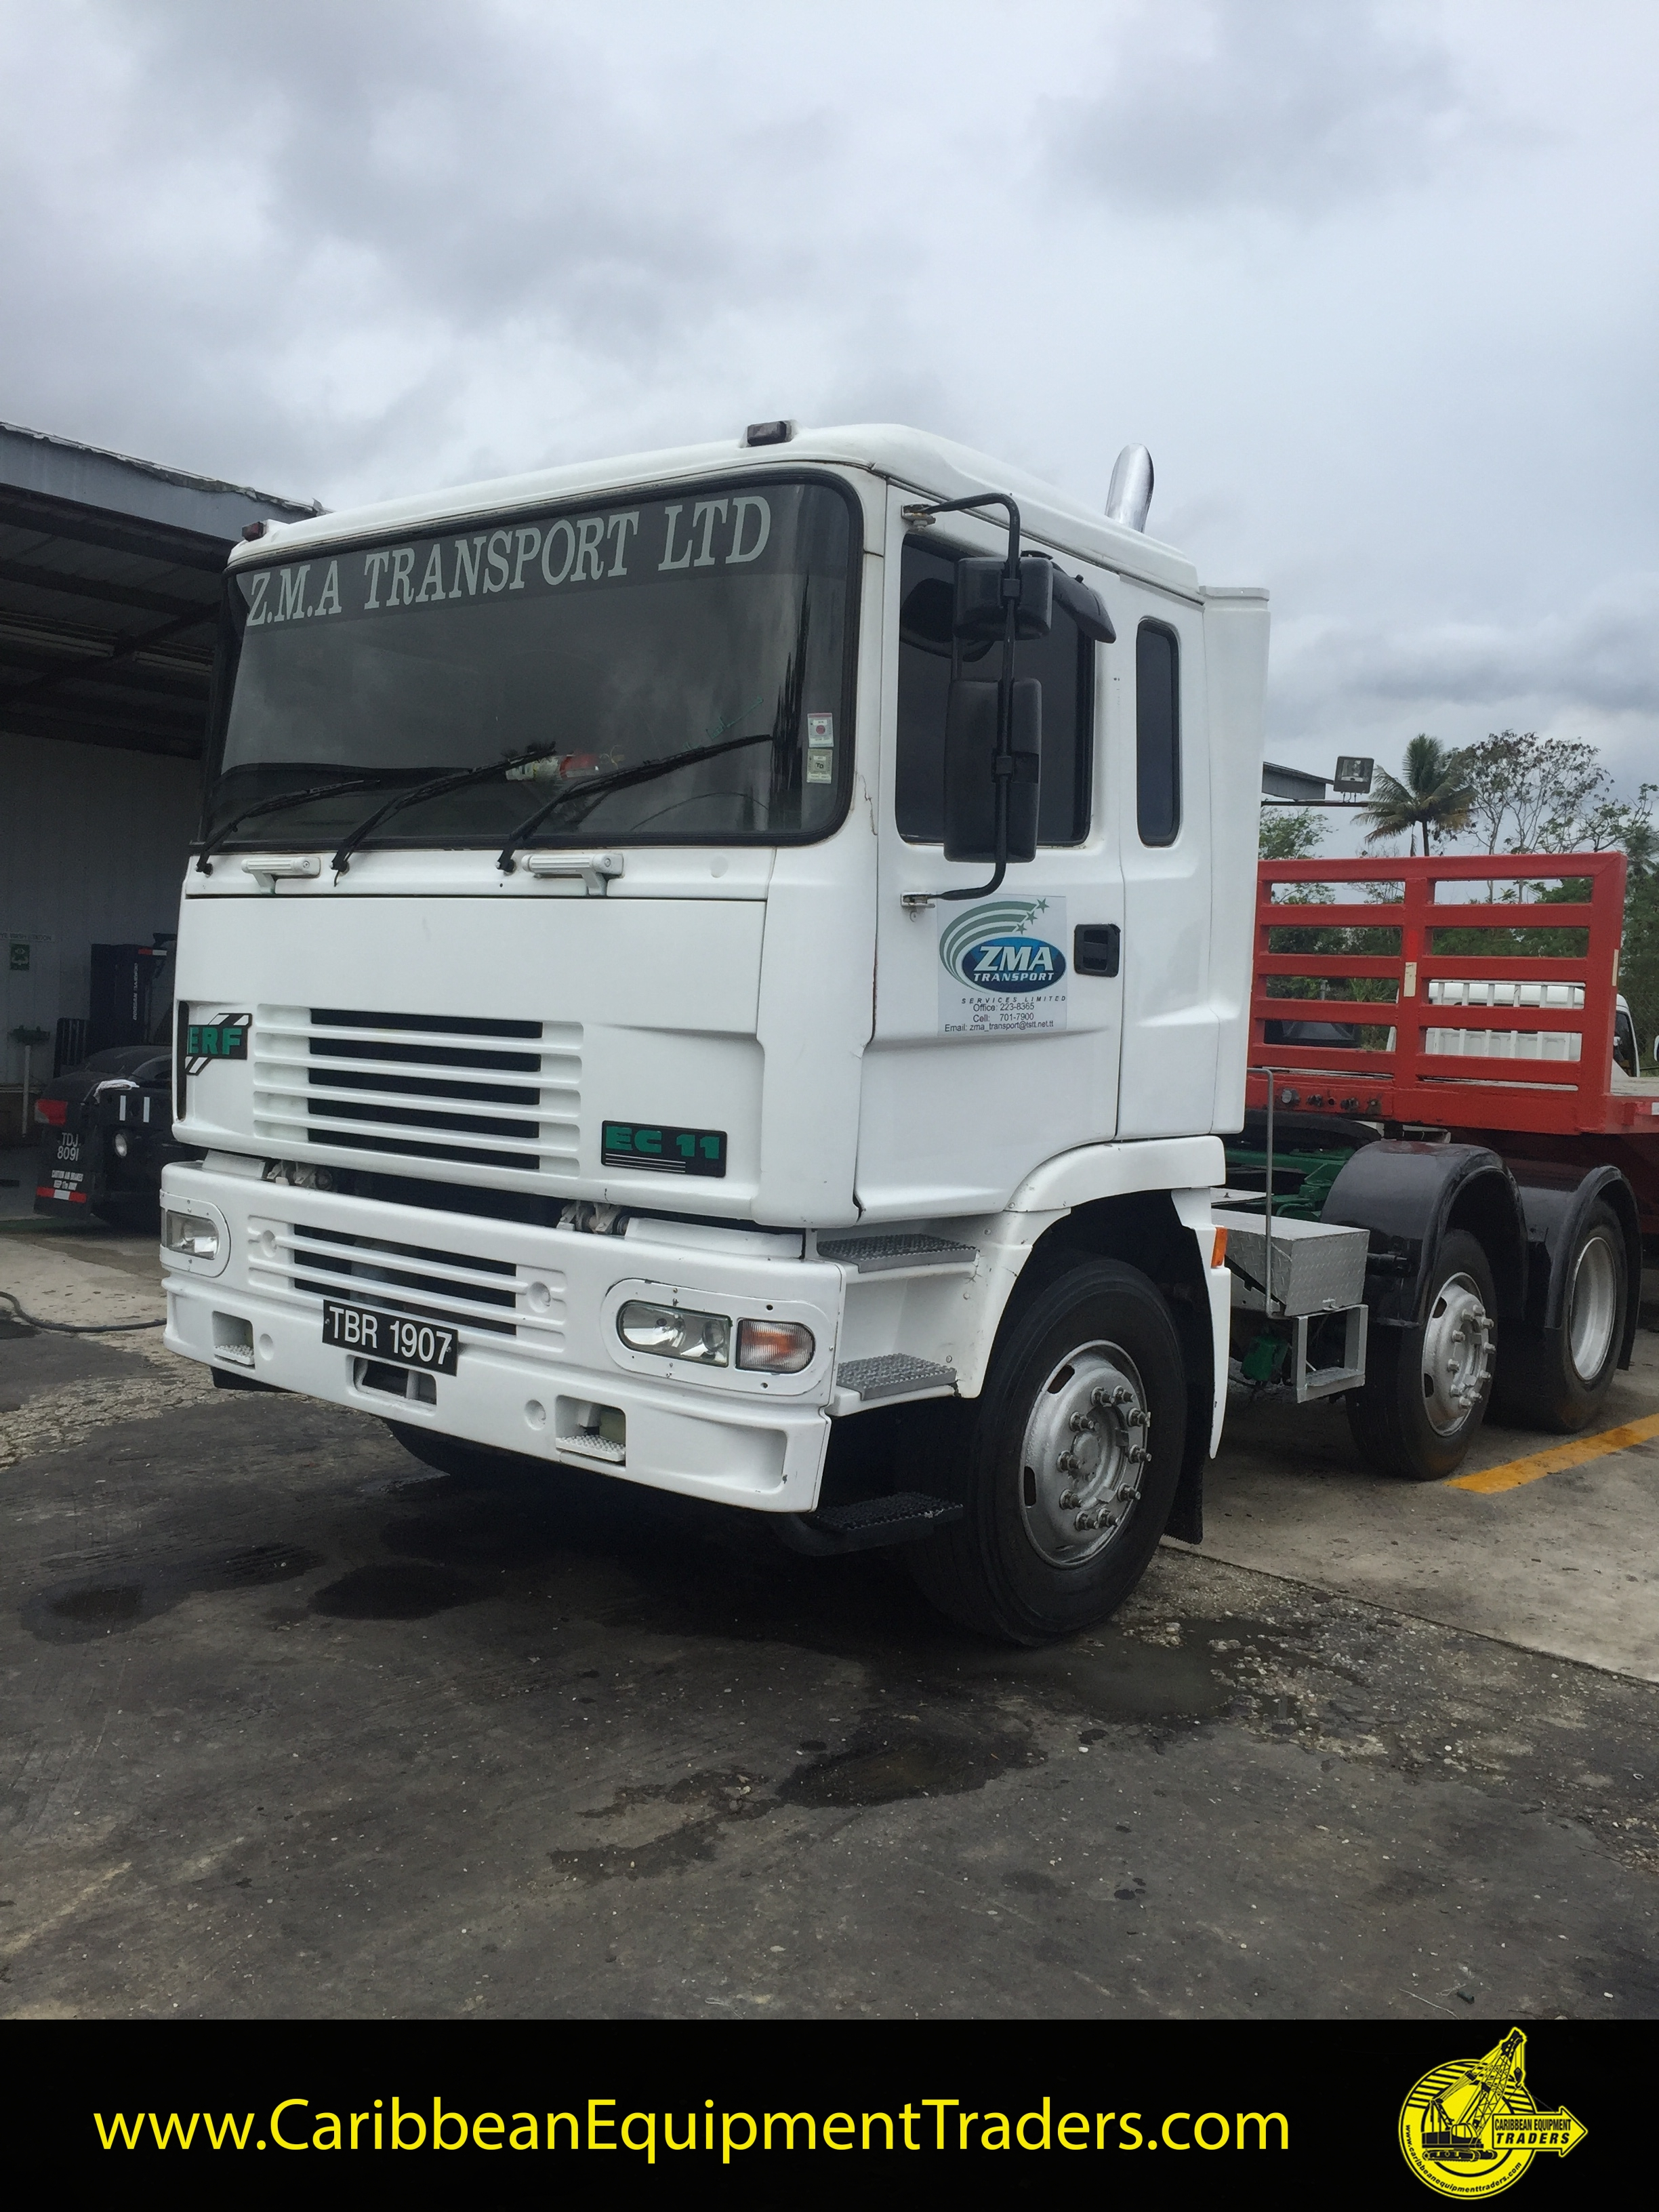 ERF EC11 8 Wheeler Tractor Truck for Sale | Caribbean Equipment online classifieds for heavy ...